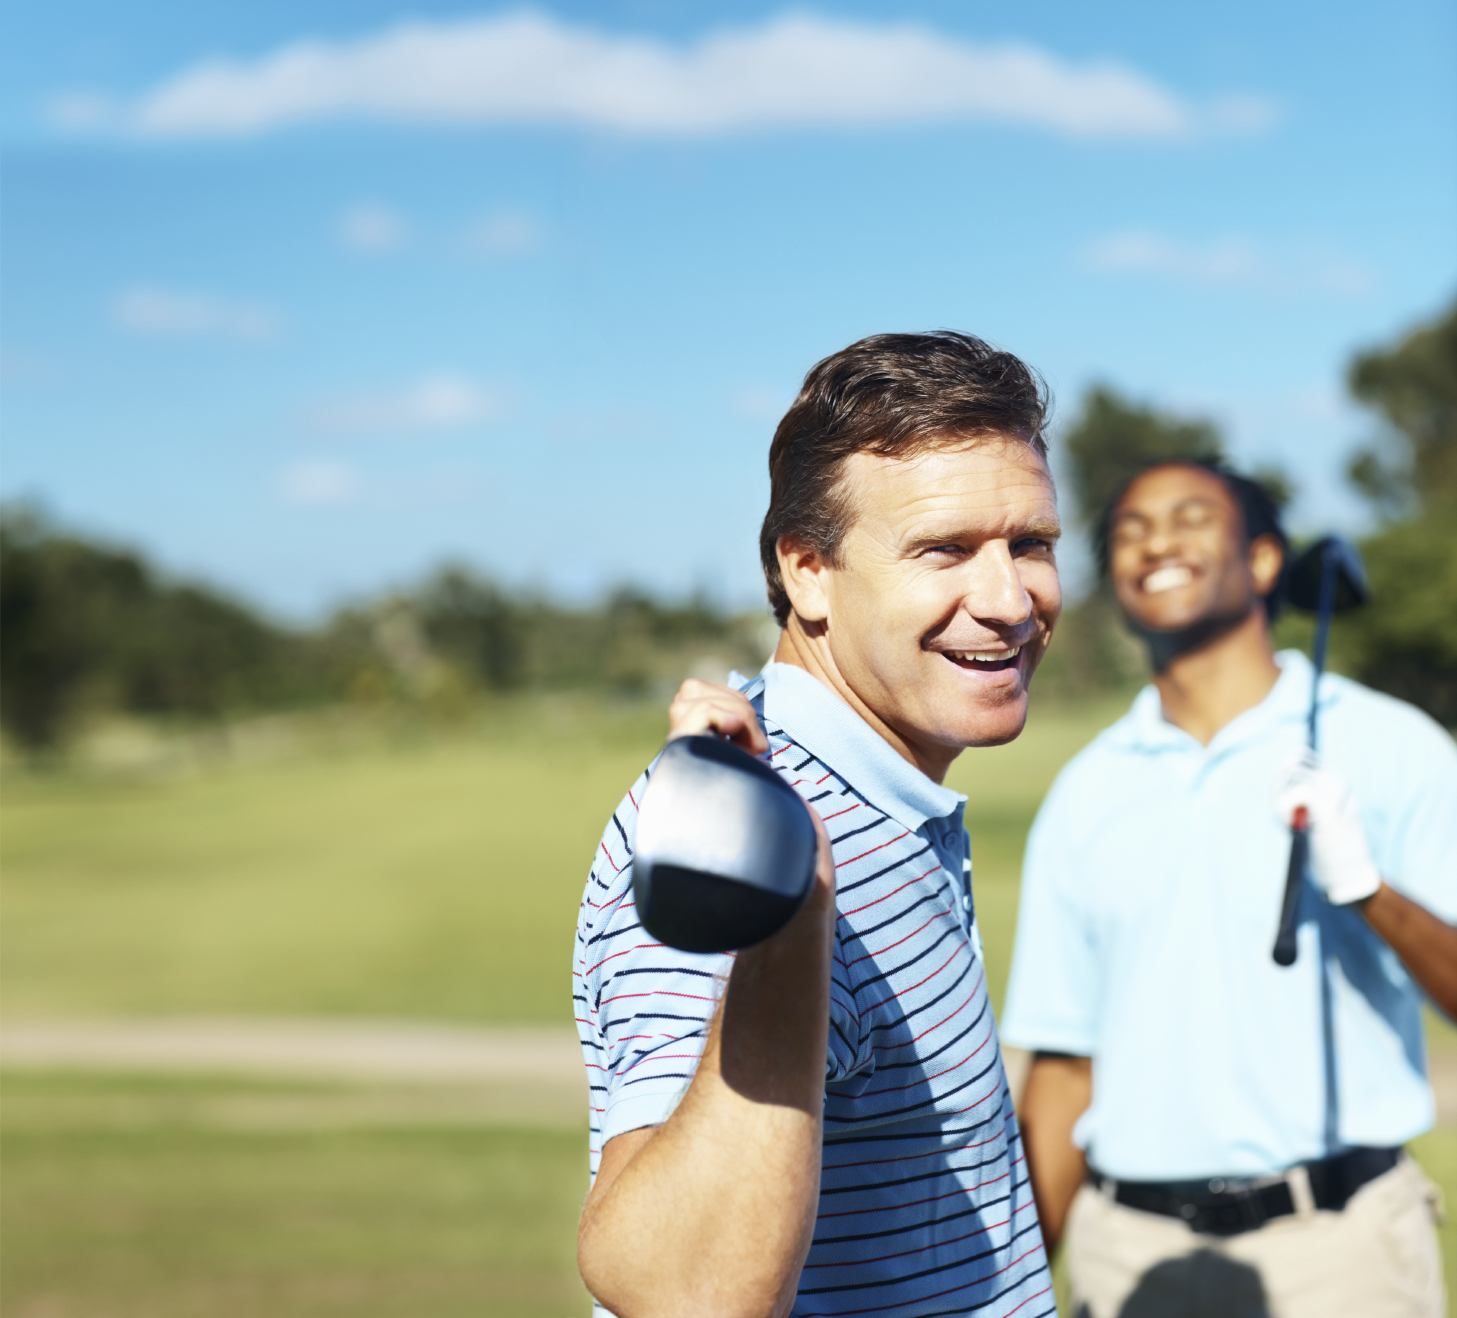 Golf Etiquette Tips for the Private Country Club Course